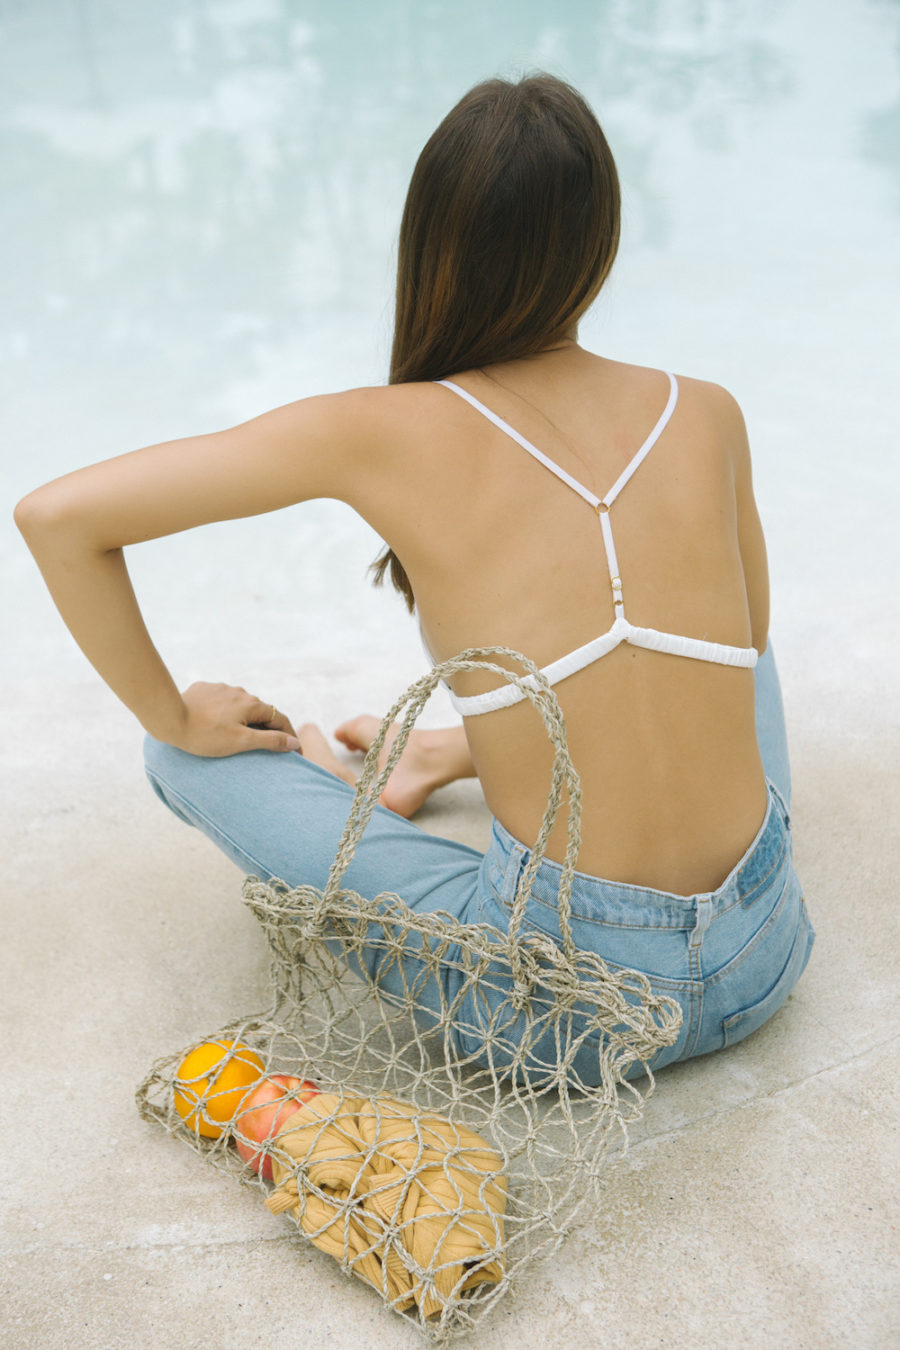 The Only Handbag You Need This Summer - Fisherman Bag Trend, Net Handbag, Macrame Handbag // Notjessfashion.com